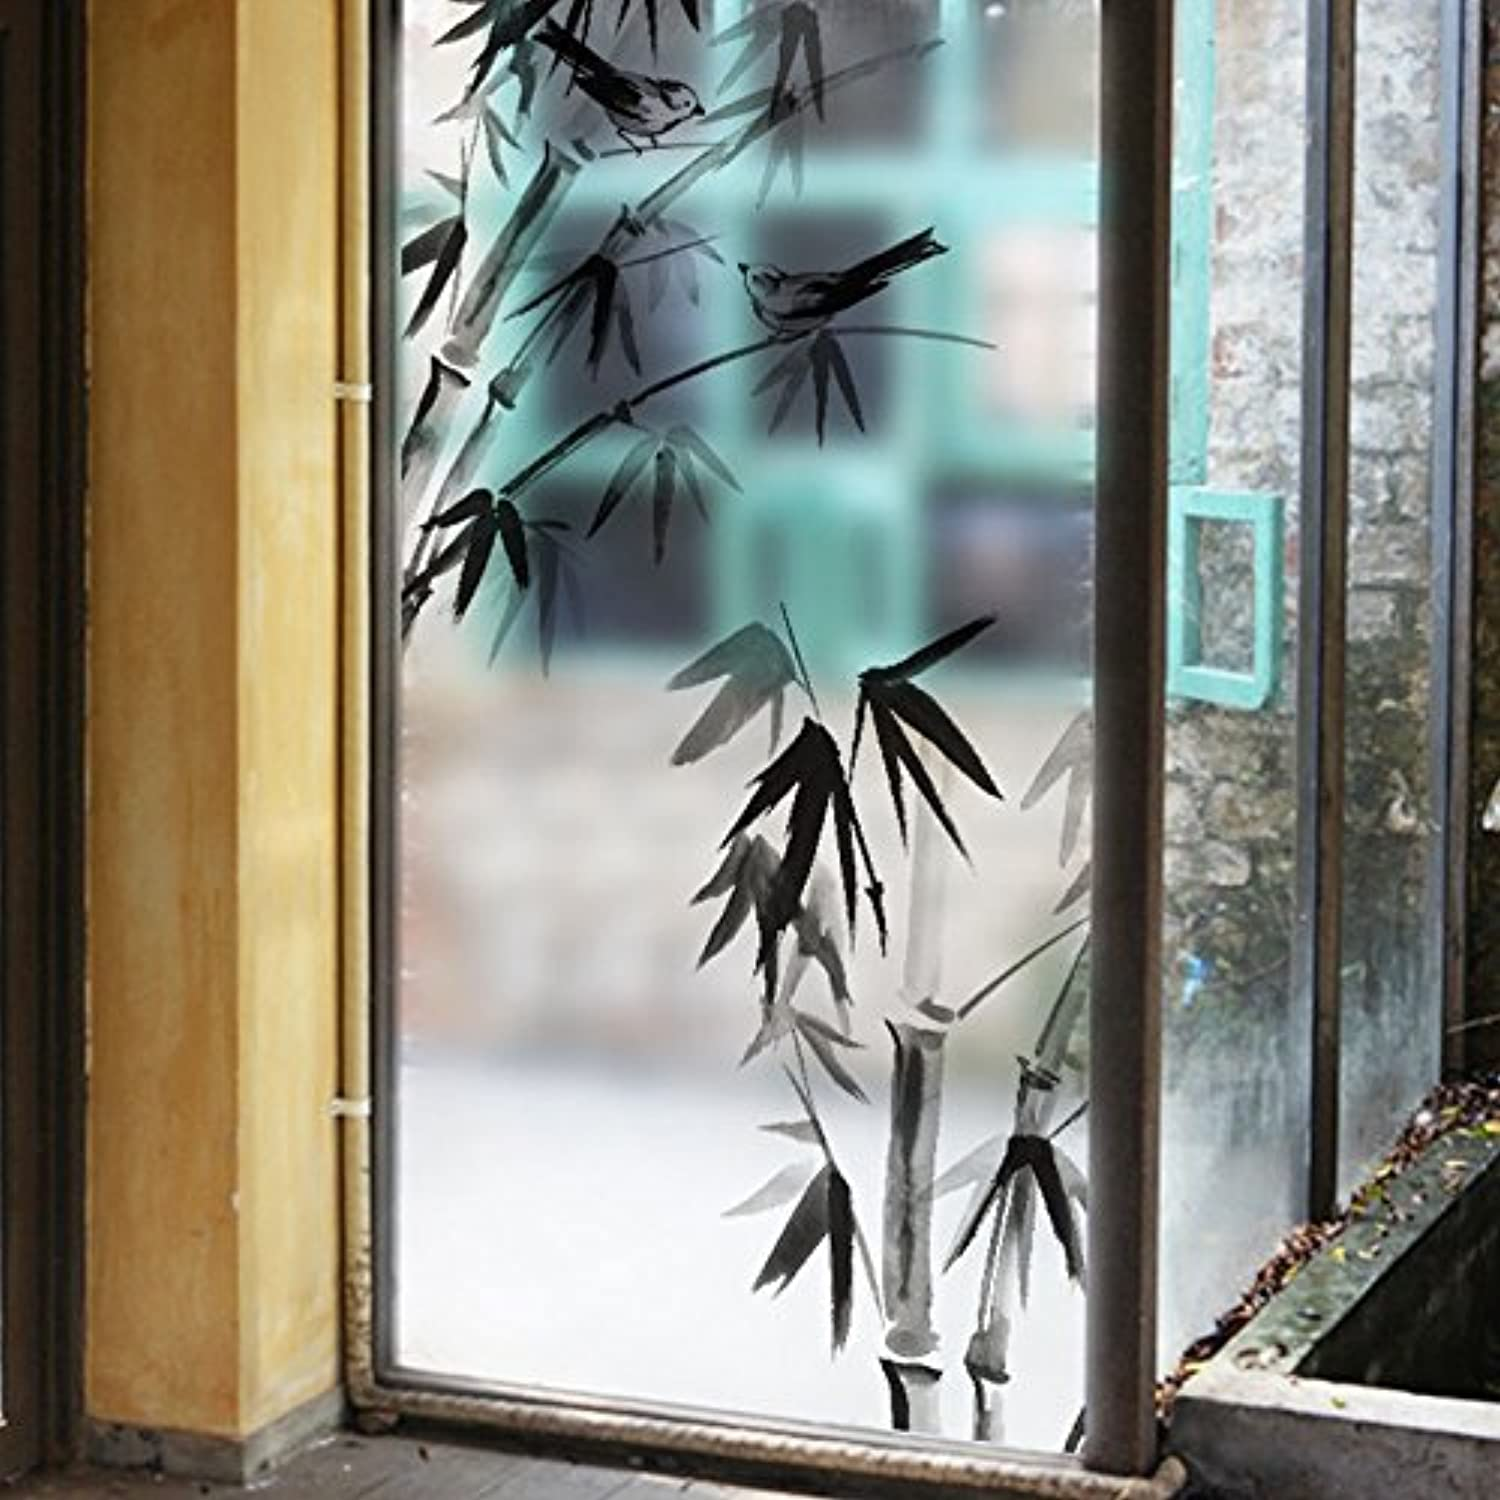 ASIBG Home Bathroom Glass Sticker Sliding Door Cellophane Transparent Opaque Window Sticking Glass Film Bathroom Waterproof Window Stickers Self-Adhesive 60116Cm (23.645.7Inch),Ink Painting Of Bamboo